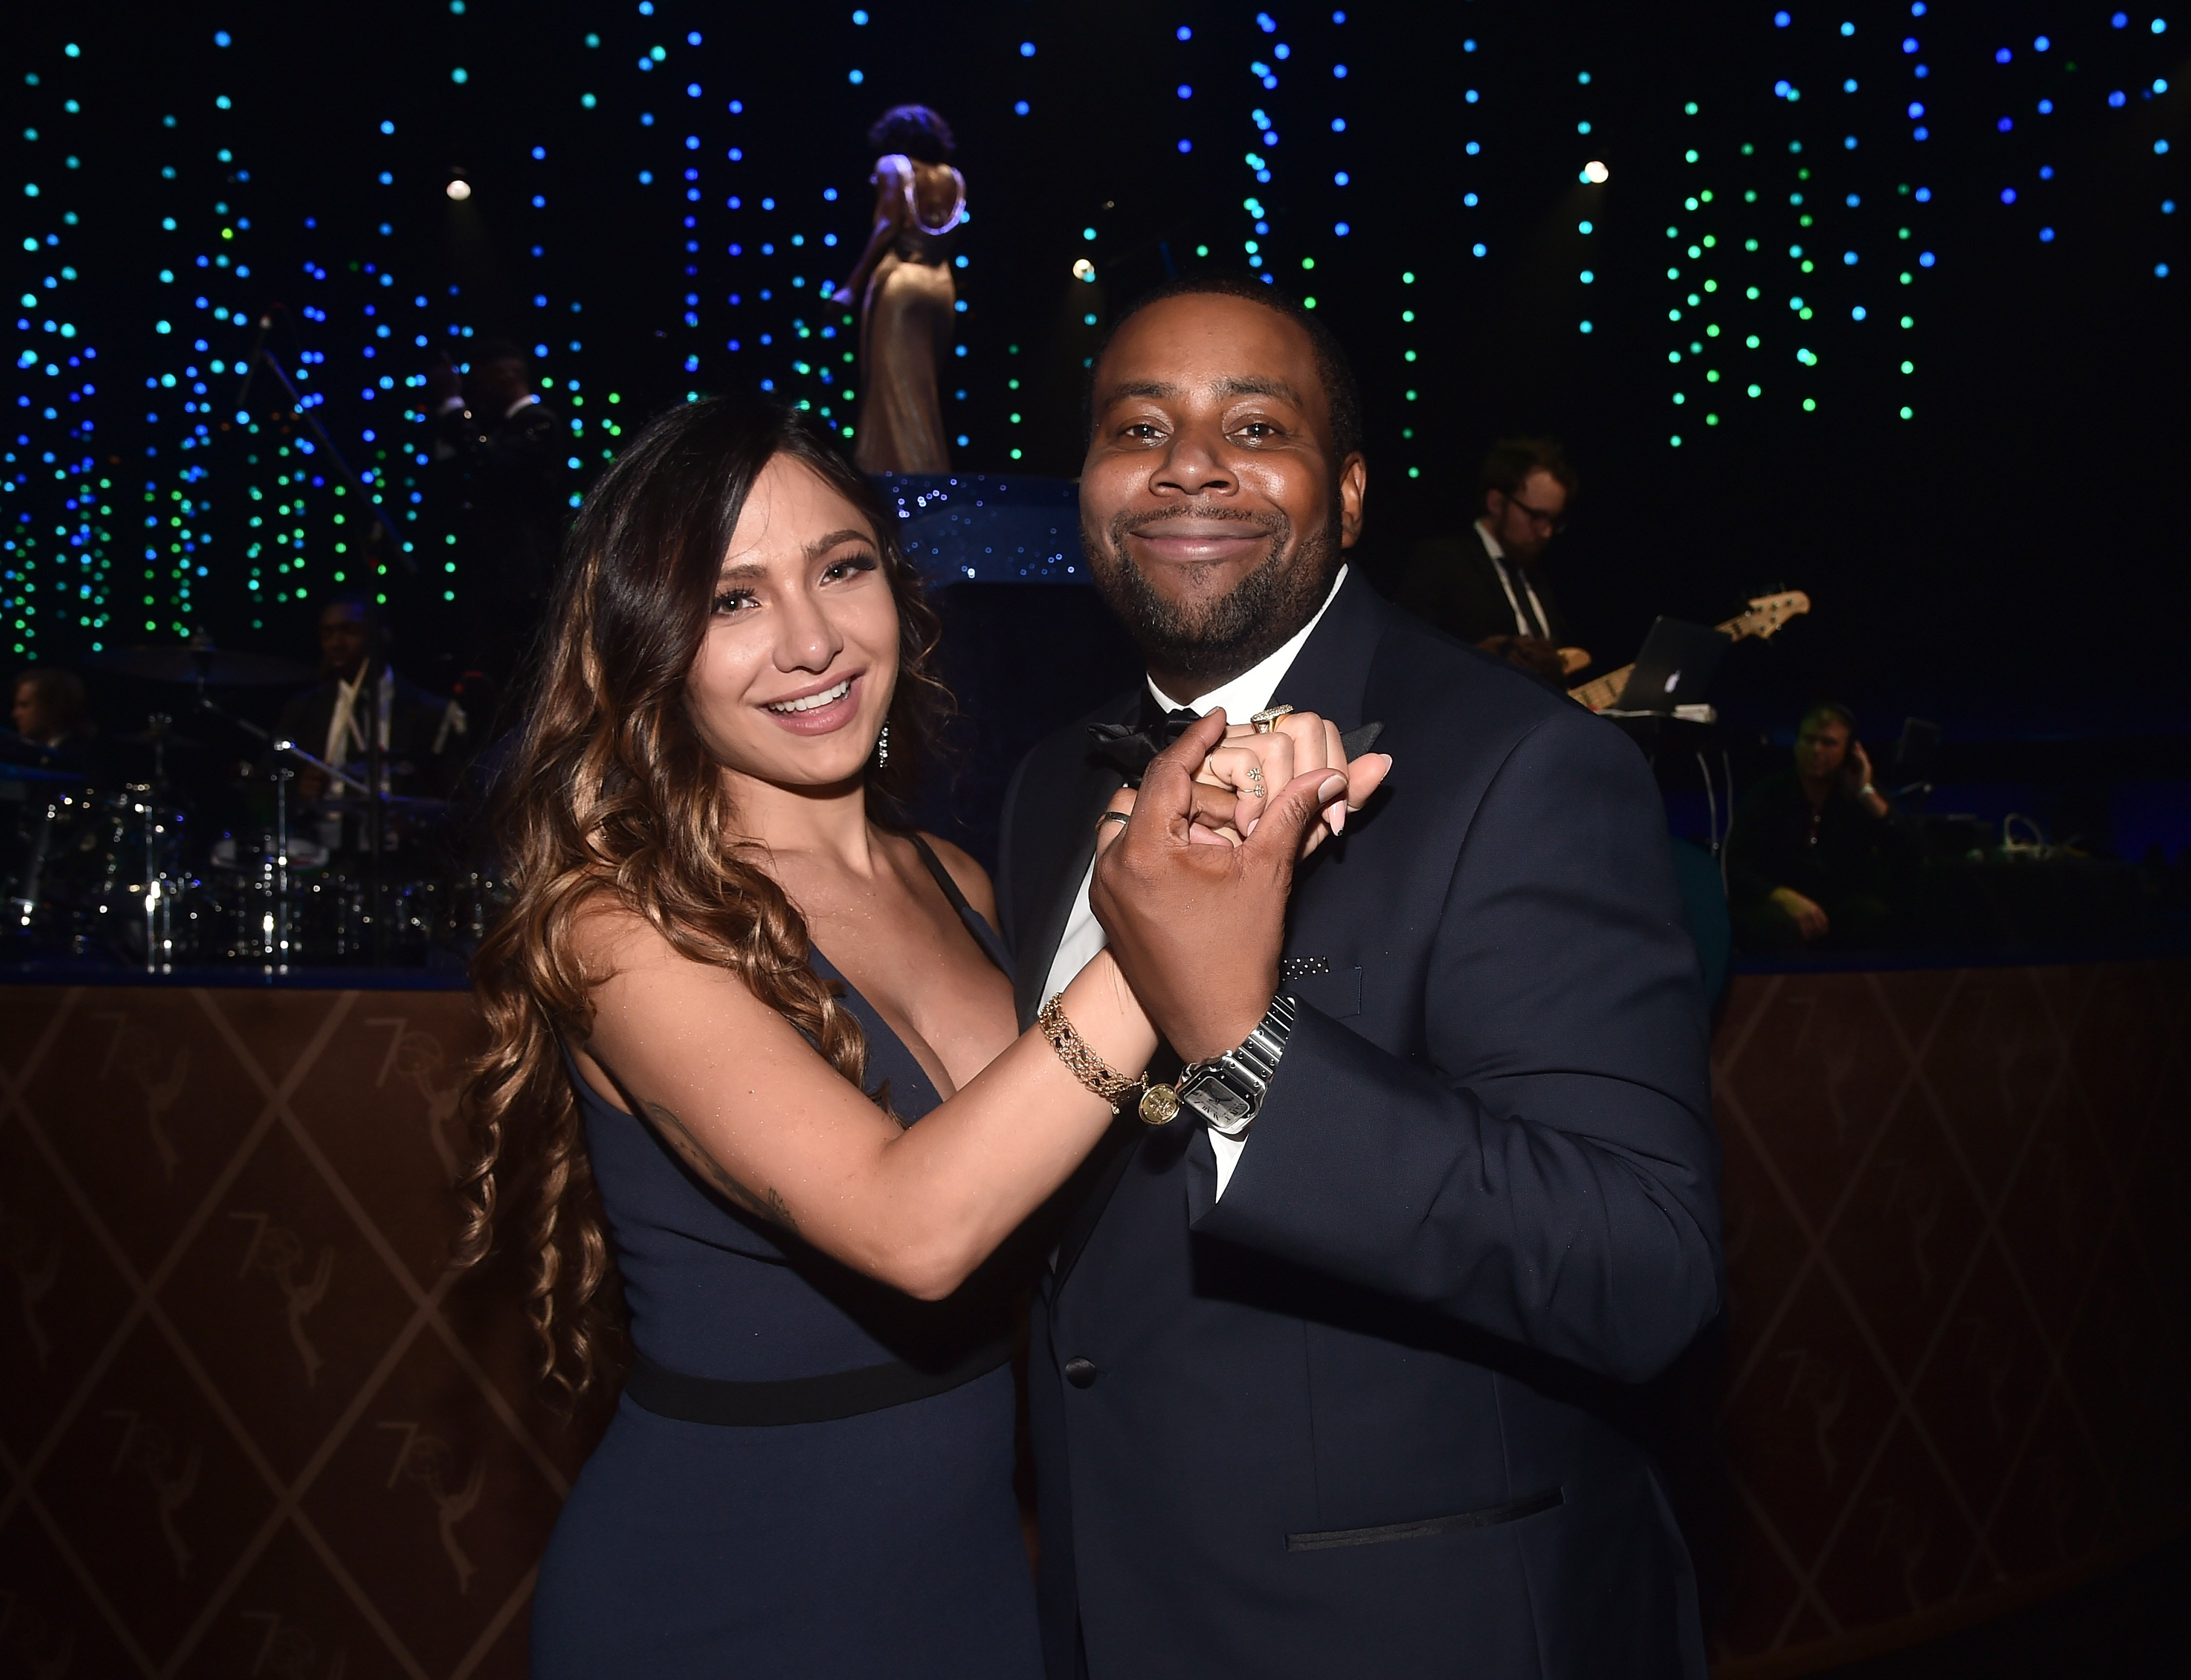 Christina Evangeline and Keenan Thompson attend the 2018 Creative Arts Ball at on September 9, 2018 in Los Angeles, California | Photo: GettyImages